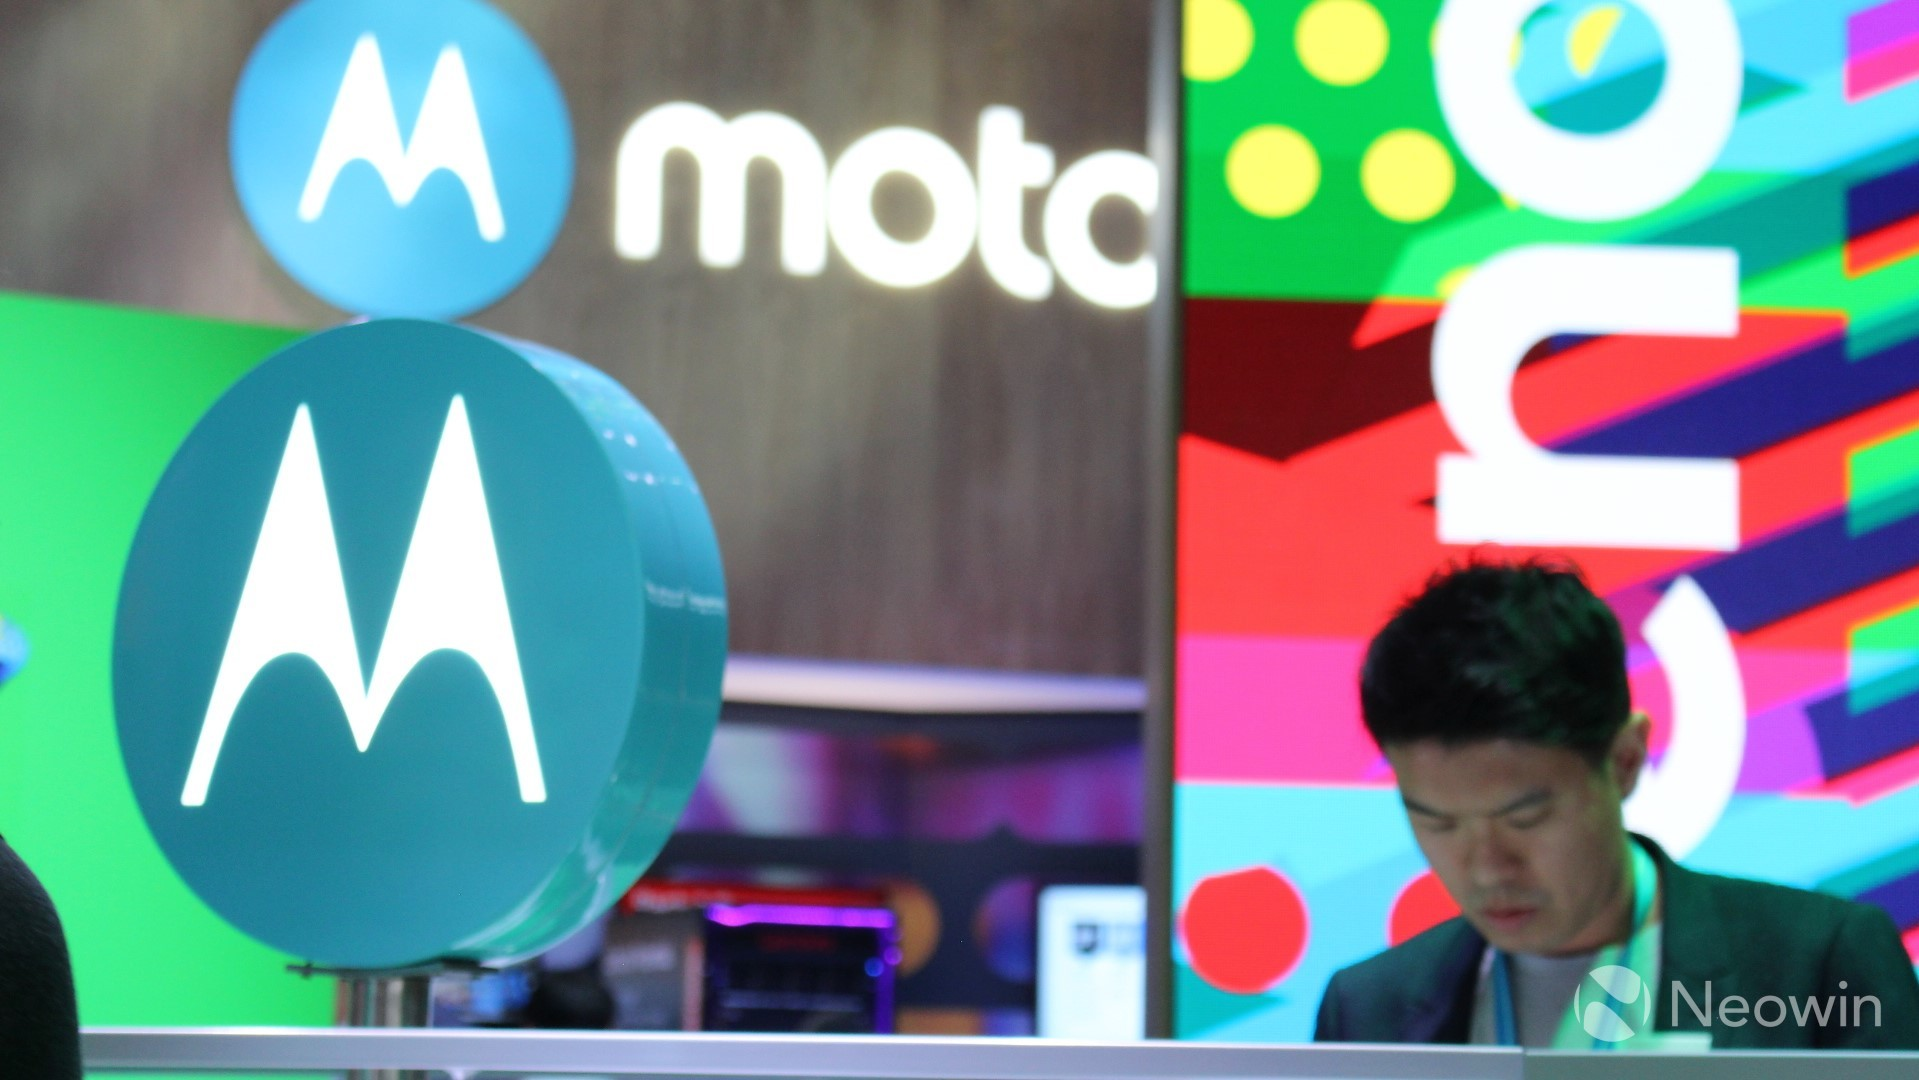 Motorola may be working on a new tablet